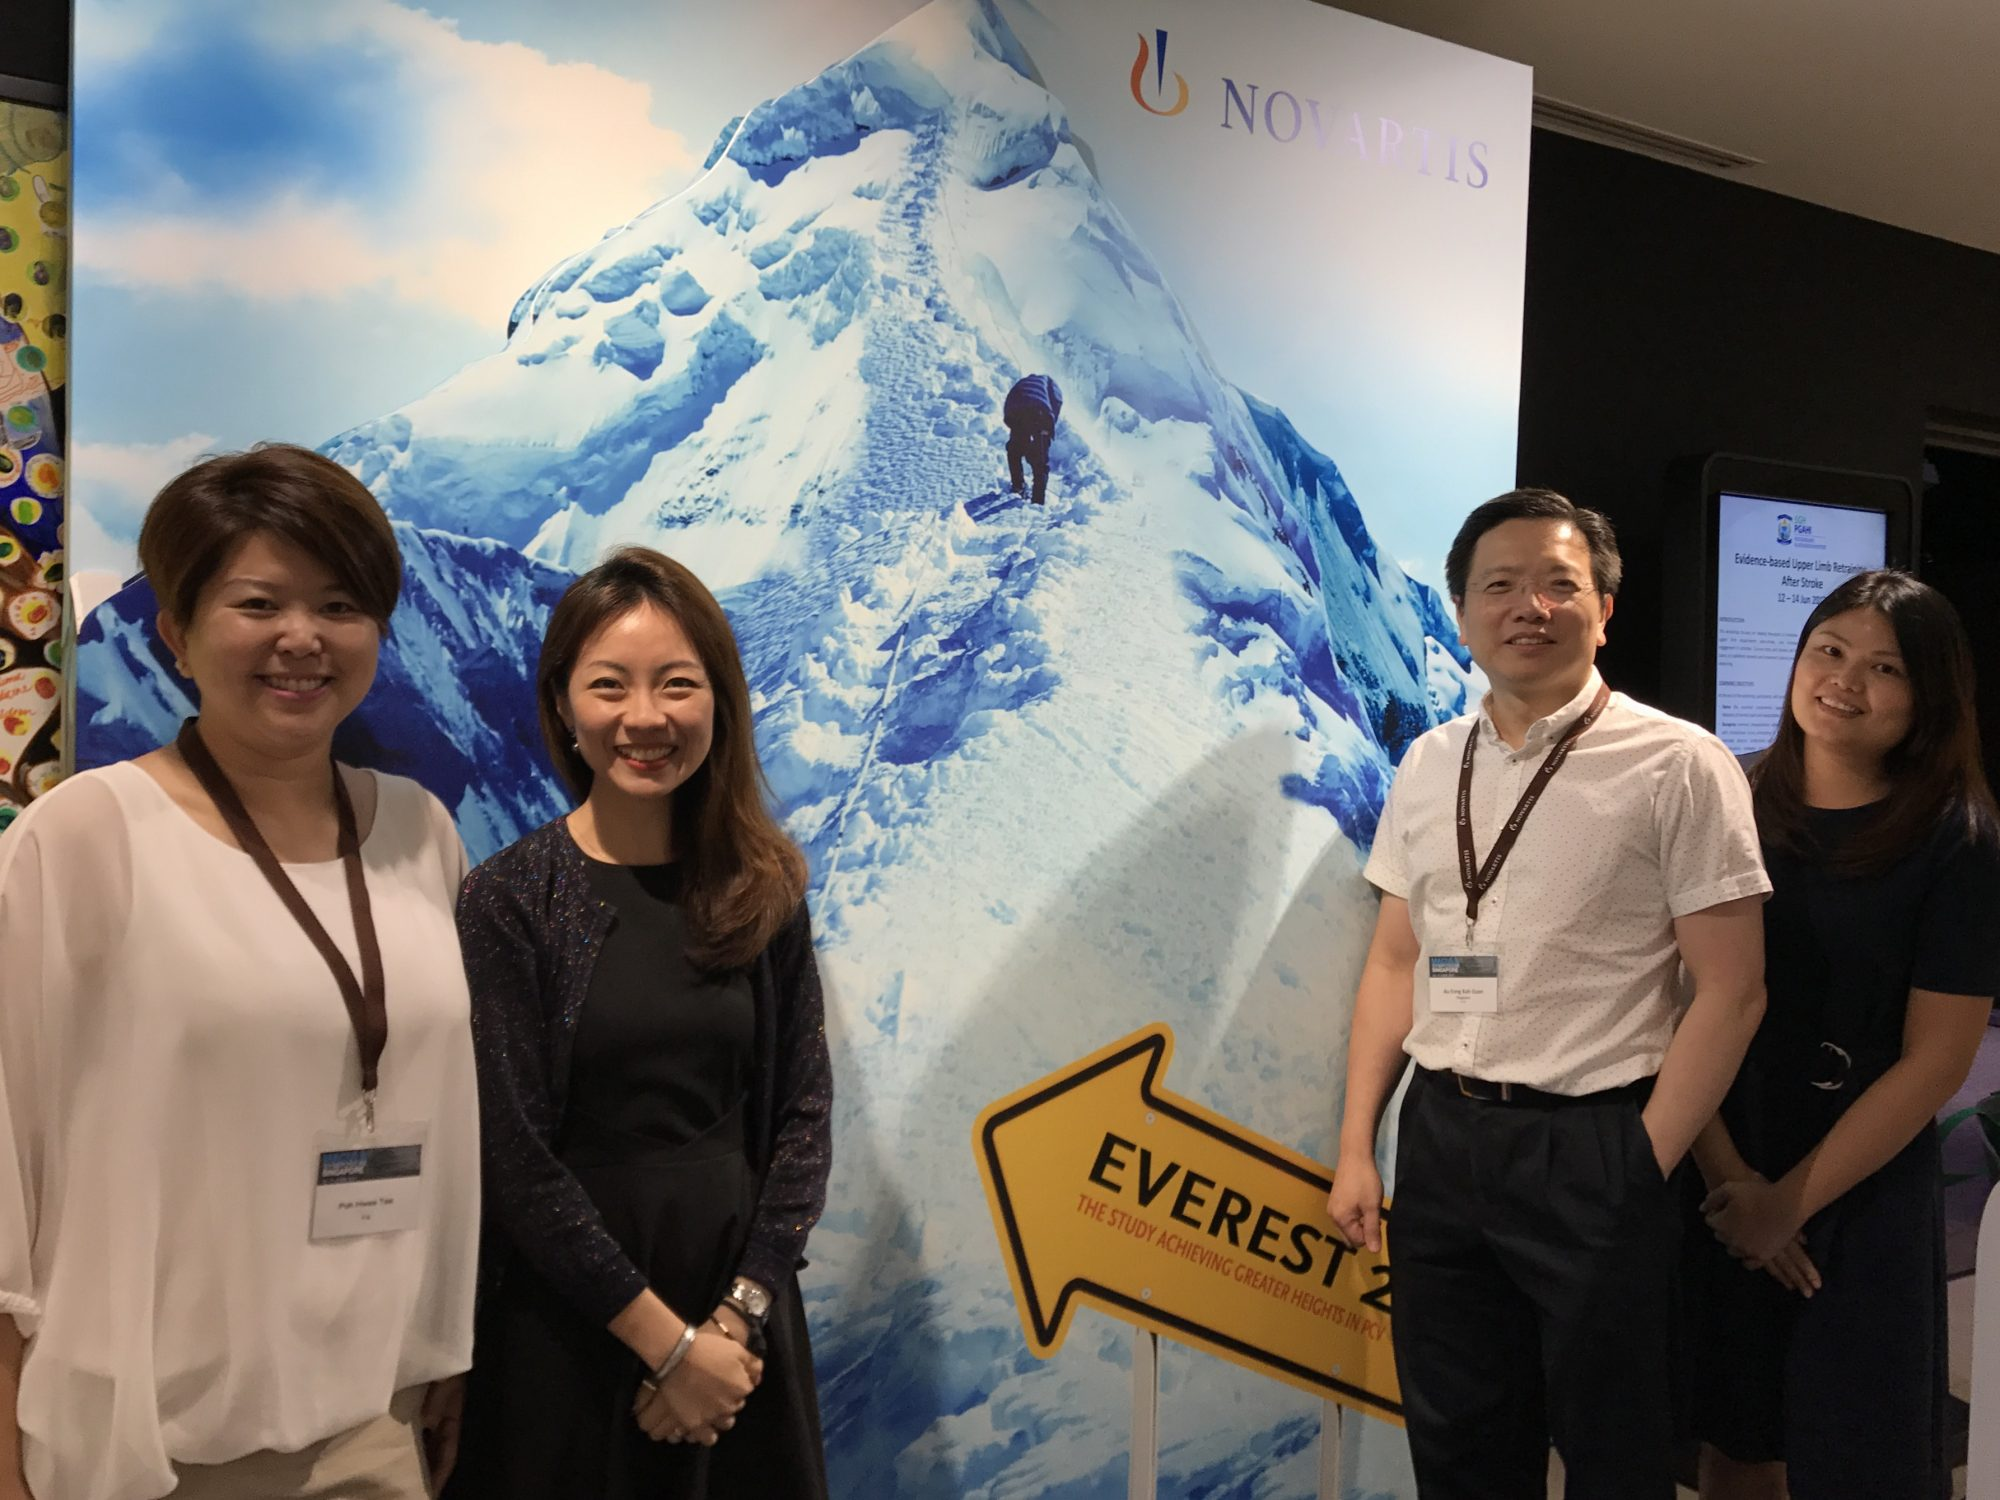 Dr Au Eong Kah Guan (third from left) with (L-R) Ms Sandy Tan, Ms Jacqueline Tan and Ms Joelle Ang from Novartis Pharmaceuticals at a booth during the Macula Symposium on 10-11 June 2017 at The Academia, Singapore General Hospital.